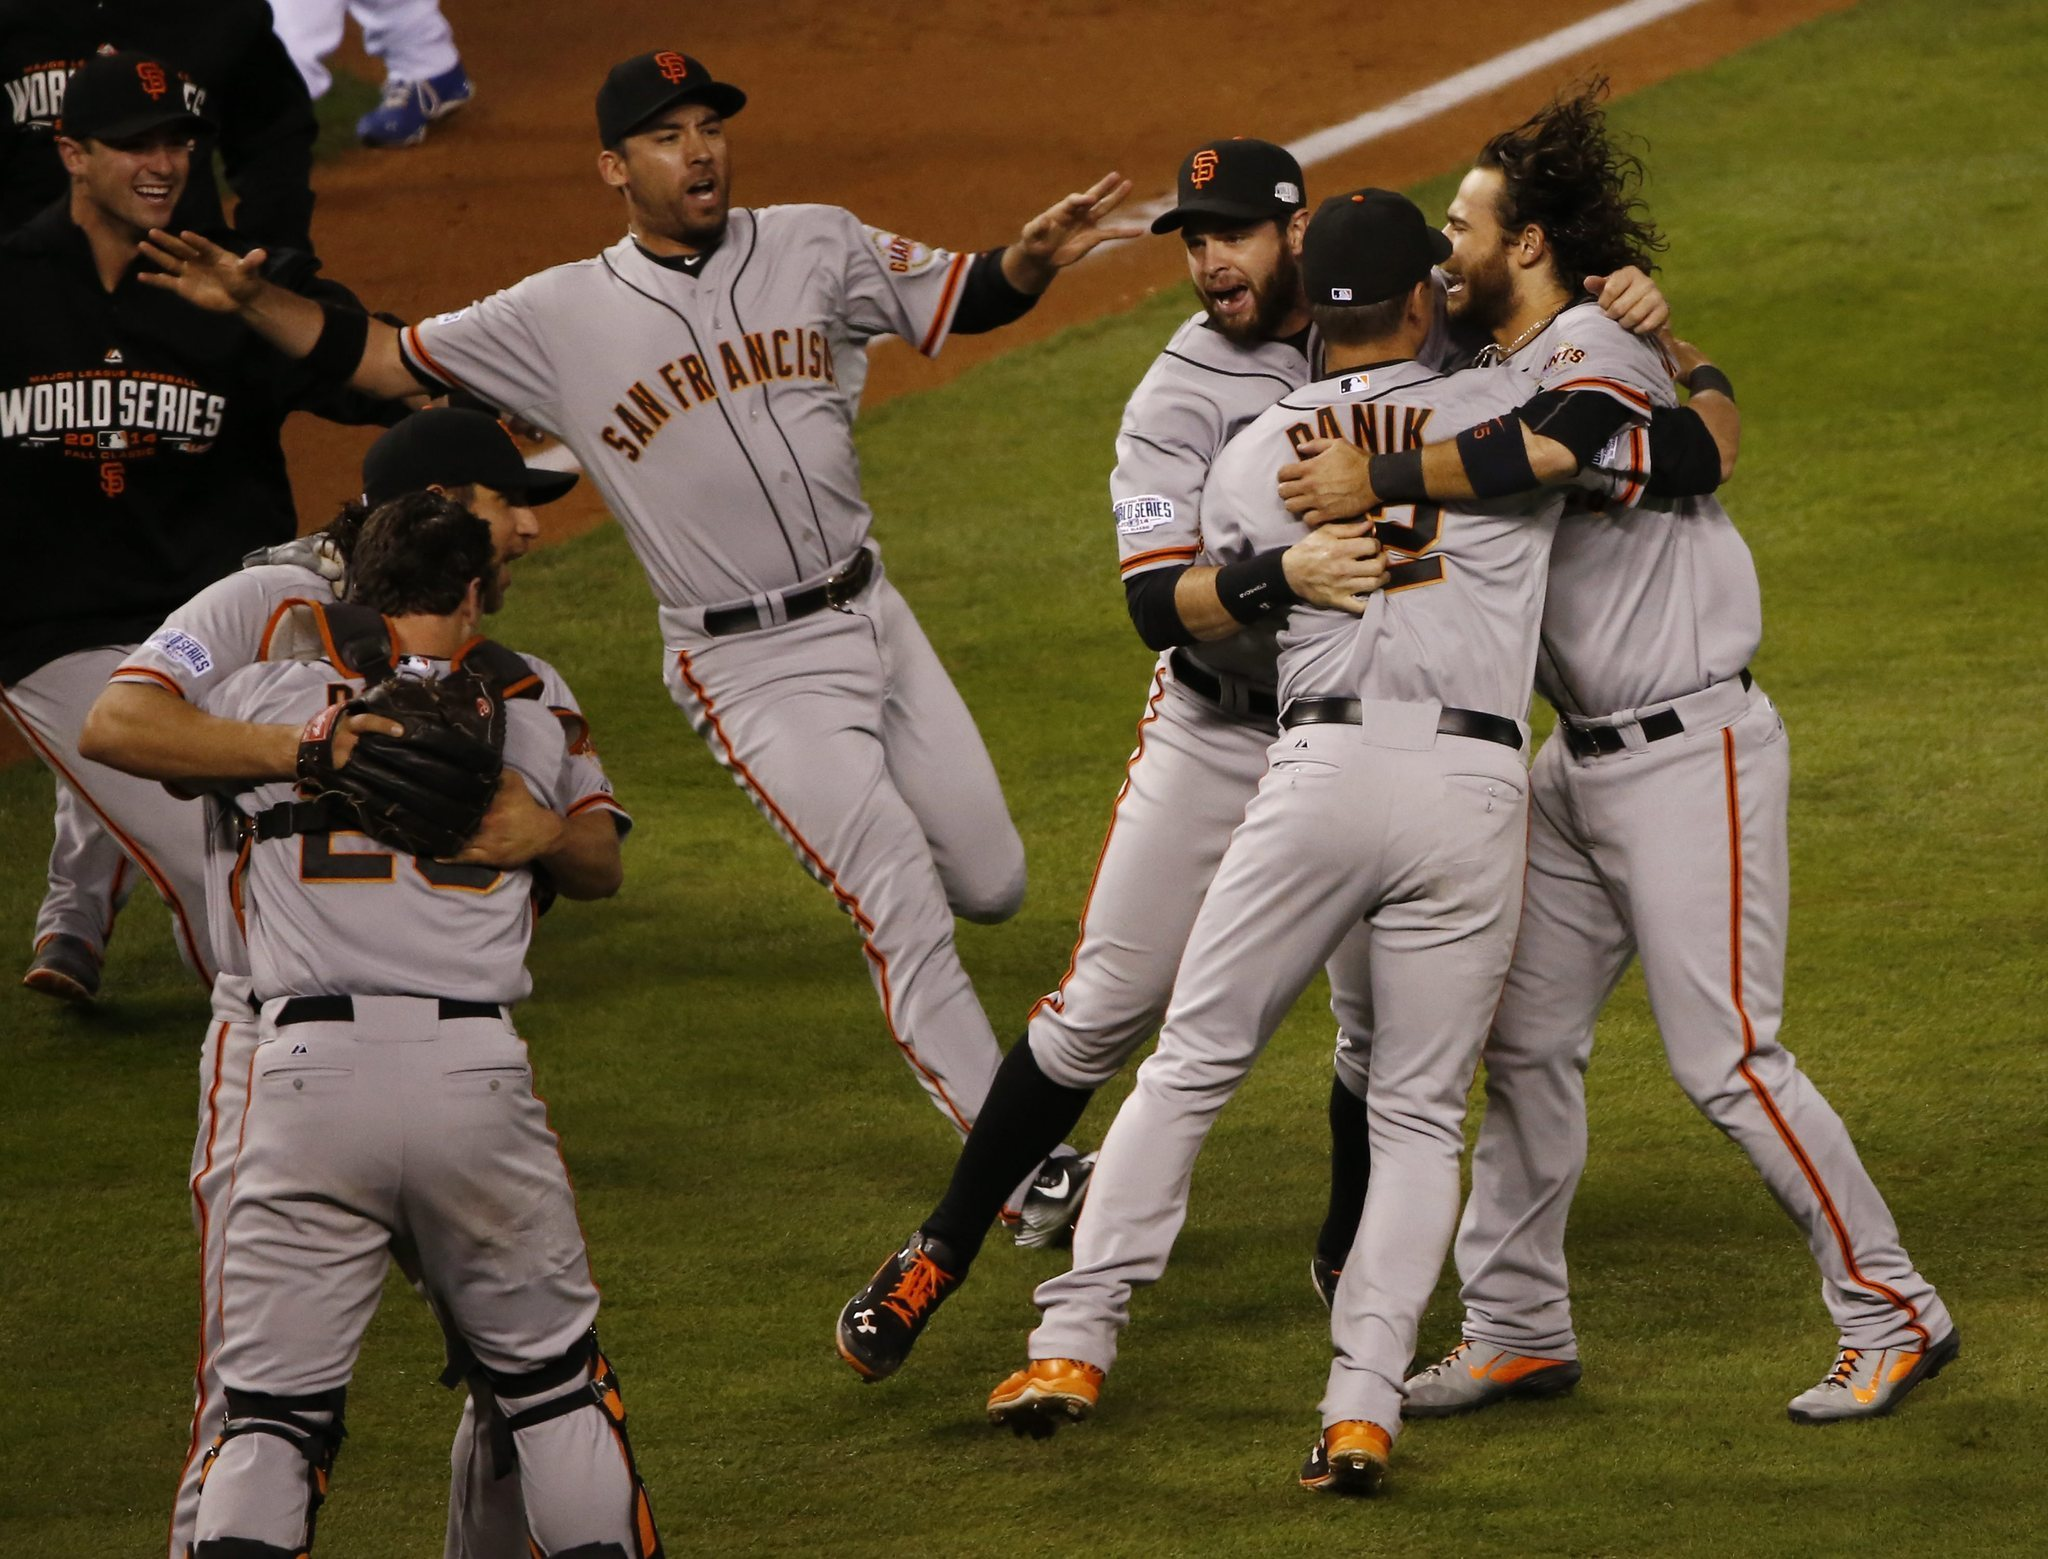 Giants beat Royals 3-2 in Game 7 to win World Series